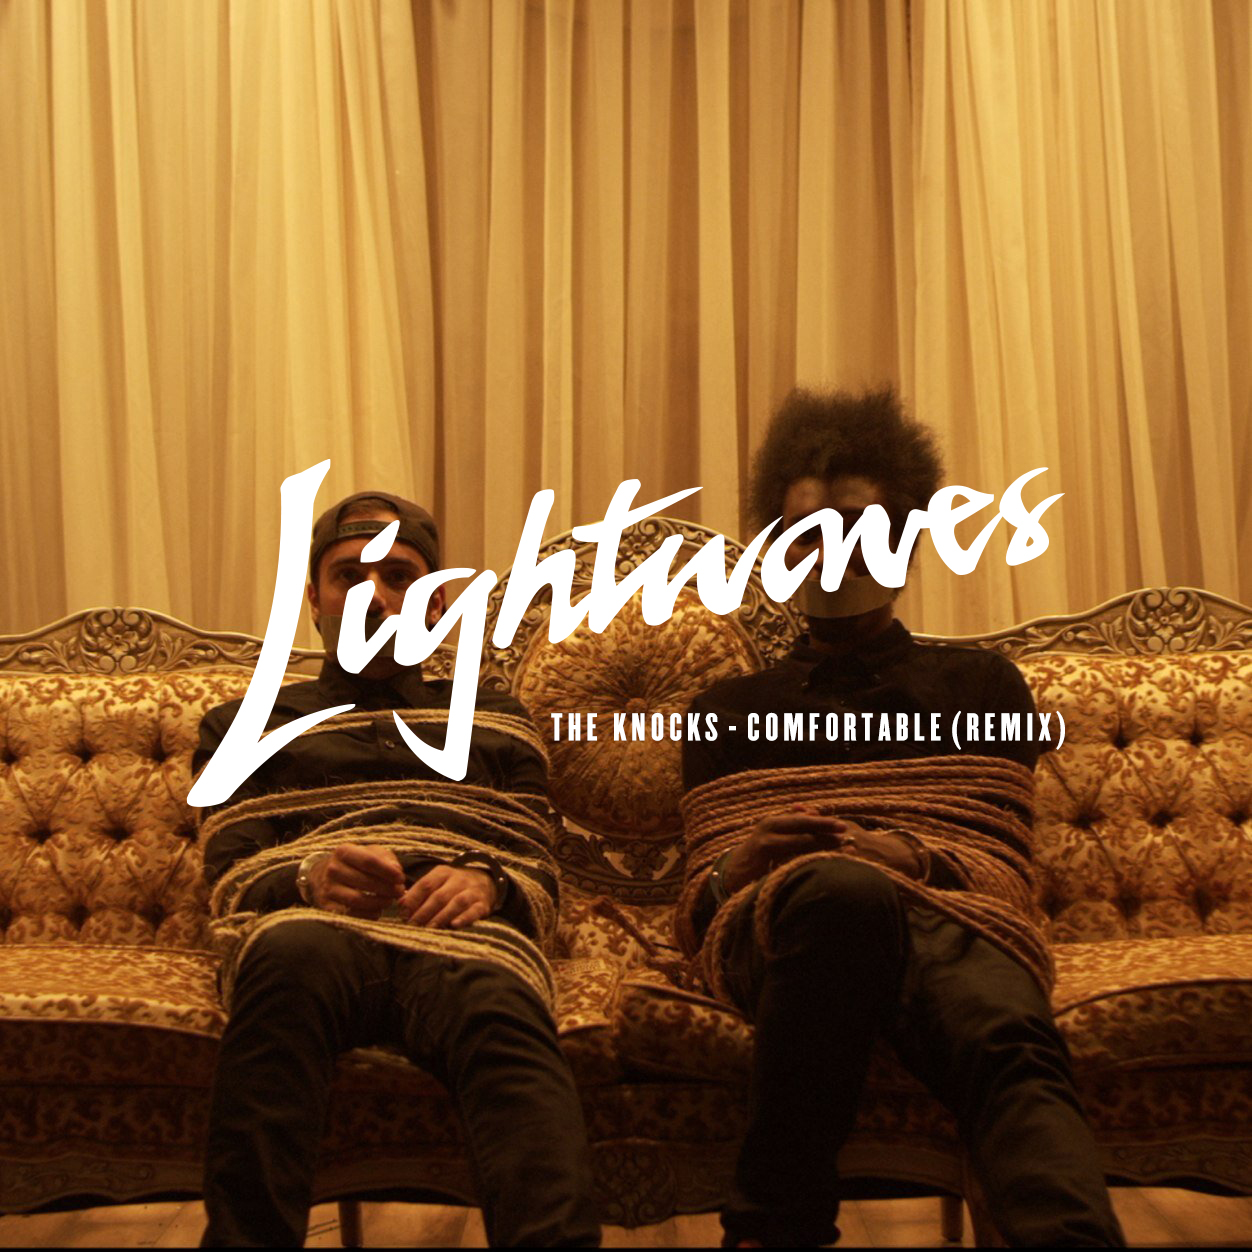 The_KNOCKS_LIGHTWAVES_REMIX